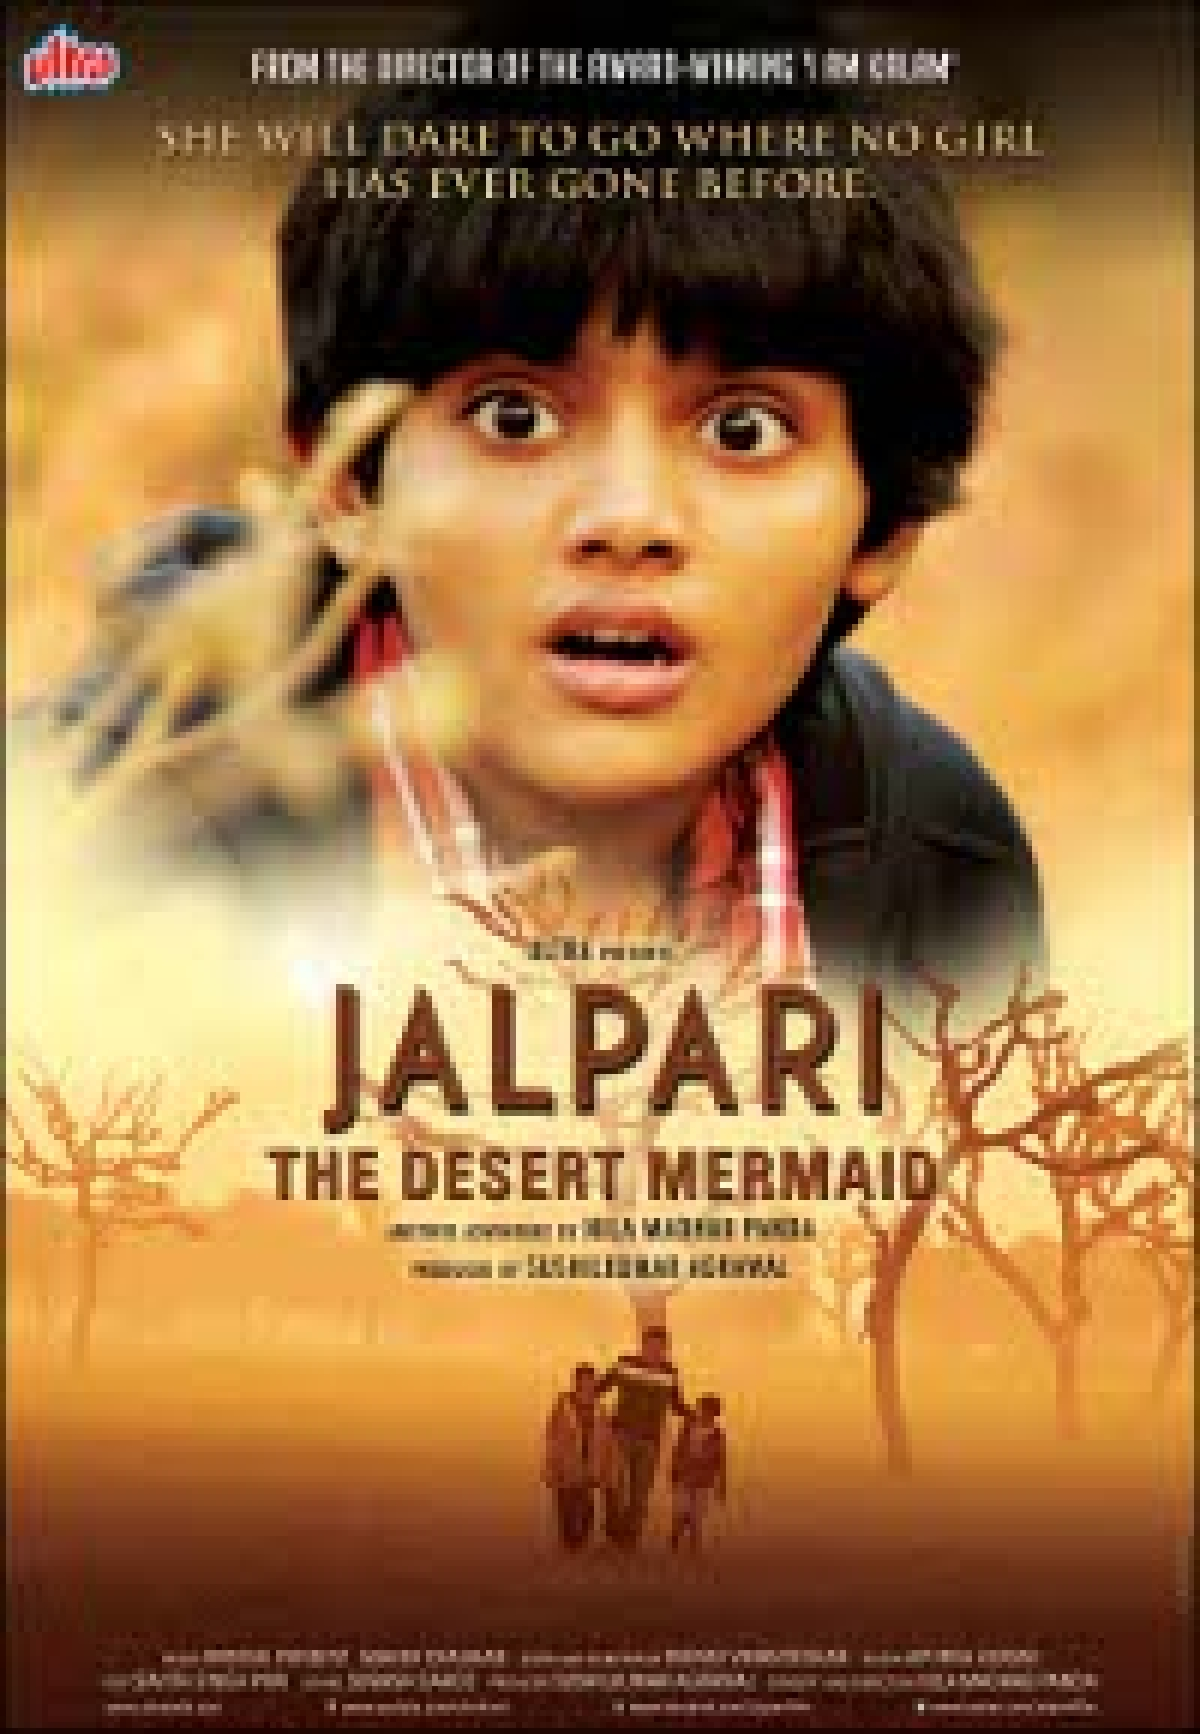 Snapdeal.com ties up as the online partner for Jalpari - The Desert Mermaid